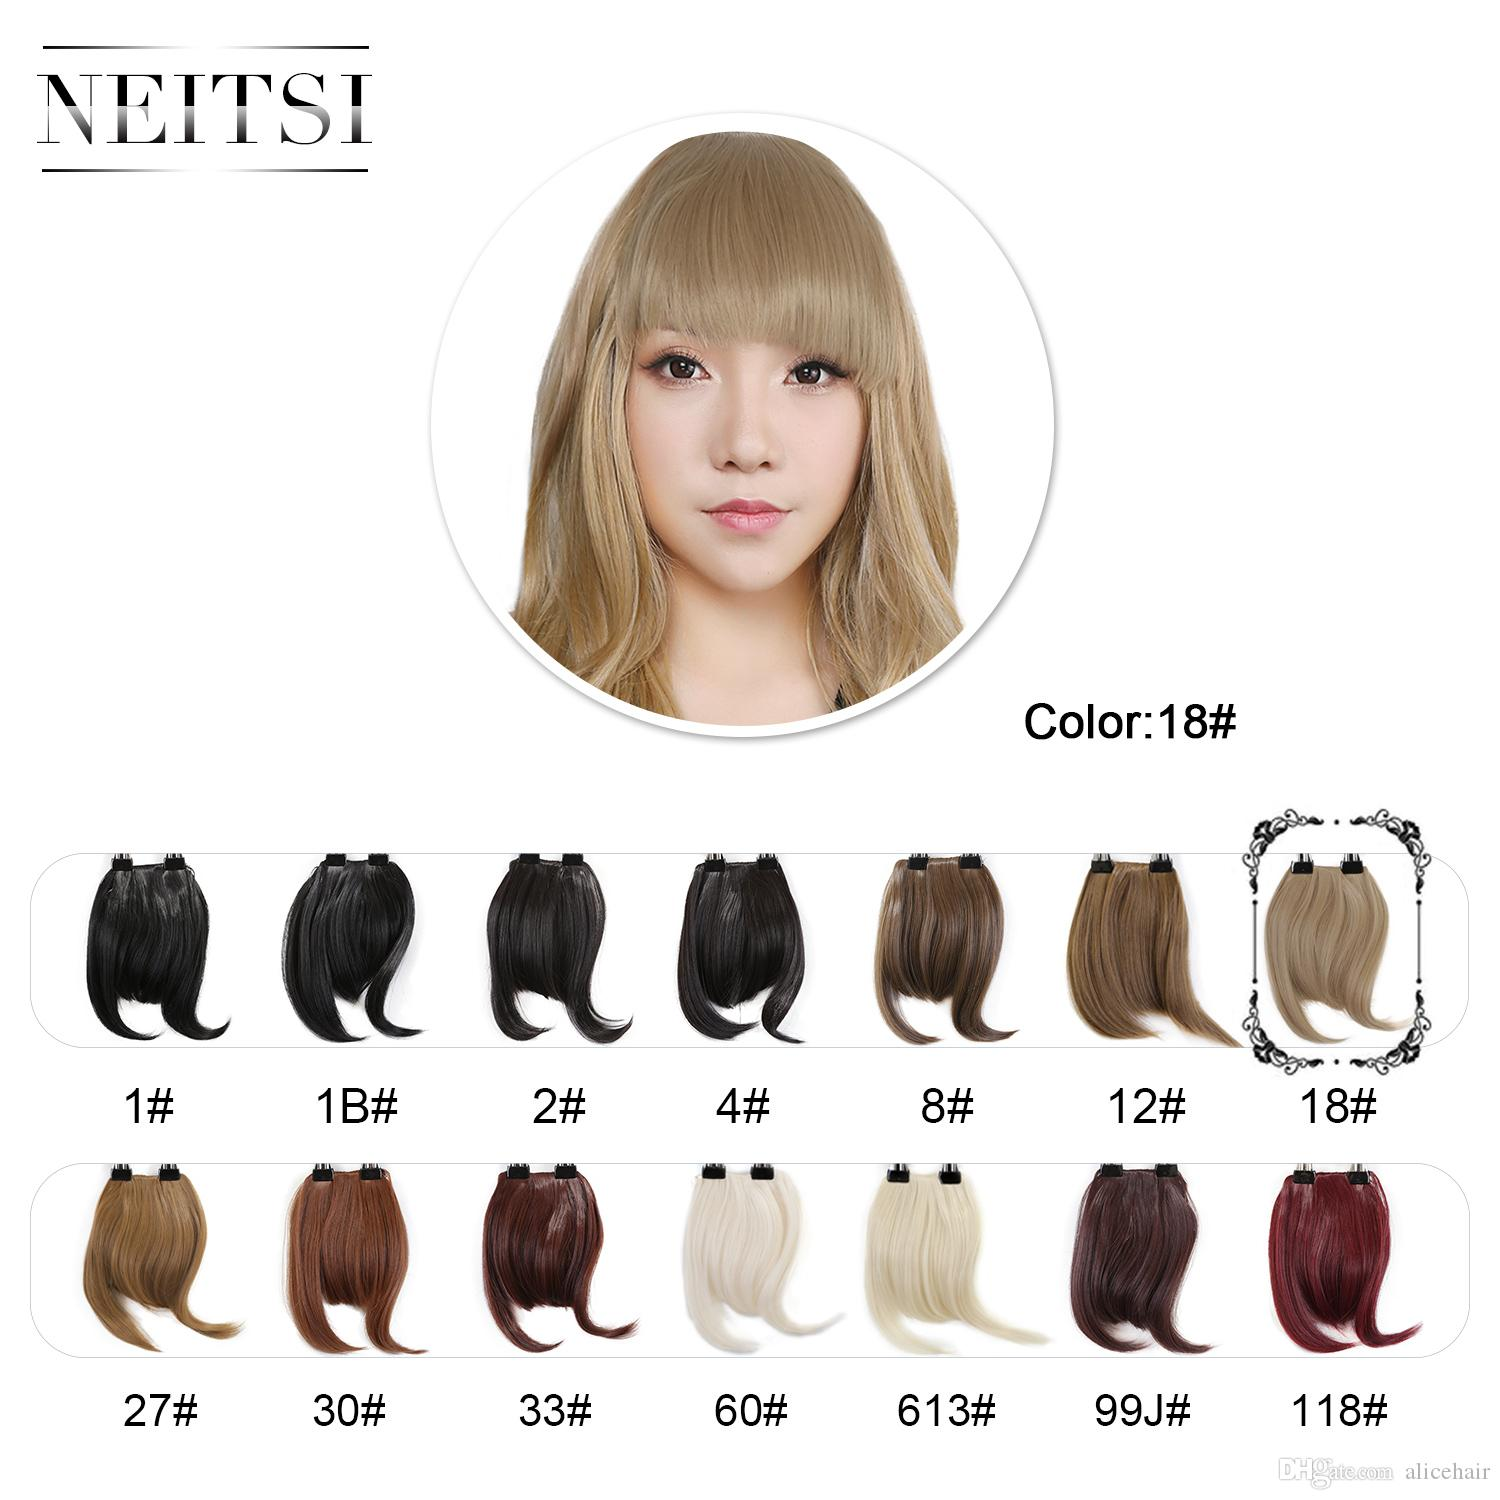 7u0027u0027 Blonde Neitsi Fake Front Fringe Clip In Bangs Hair Extentions 100%  Korea High Synthetic Fiber18# Long Hair Styles With Bangs And Layers Long  Layered ...